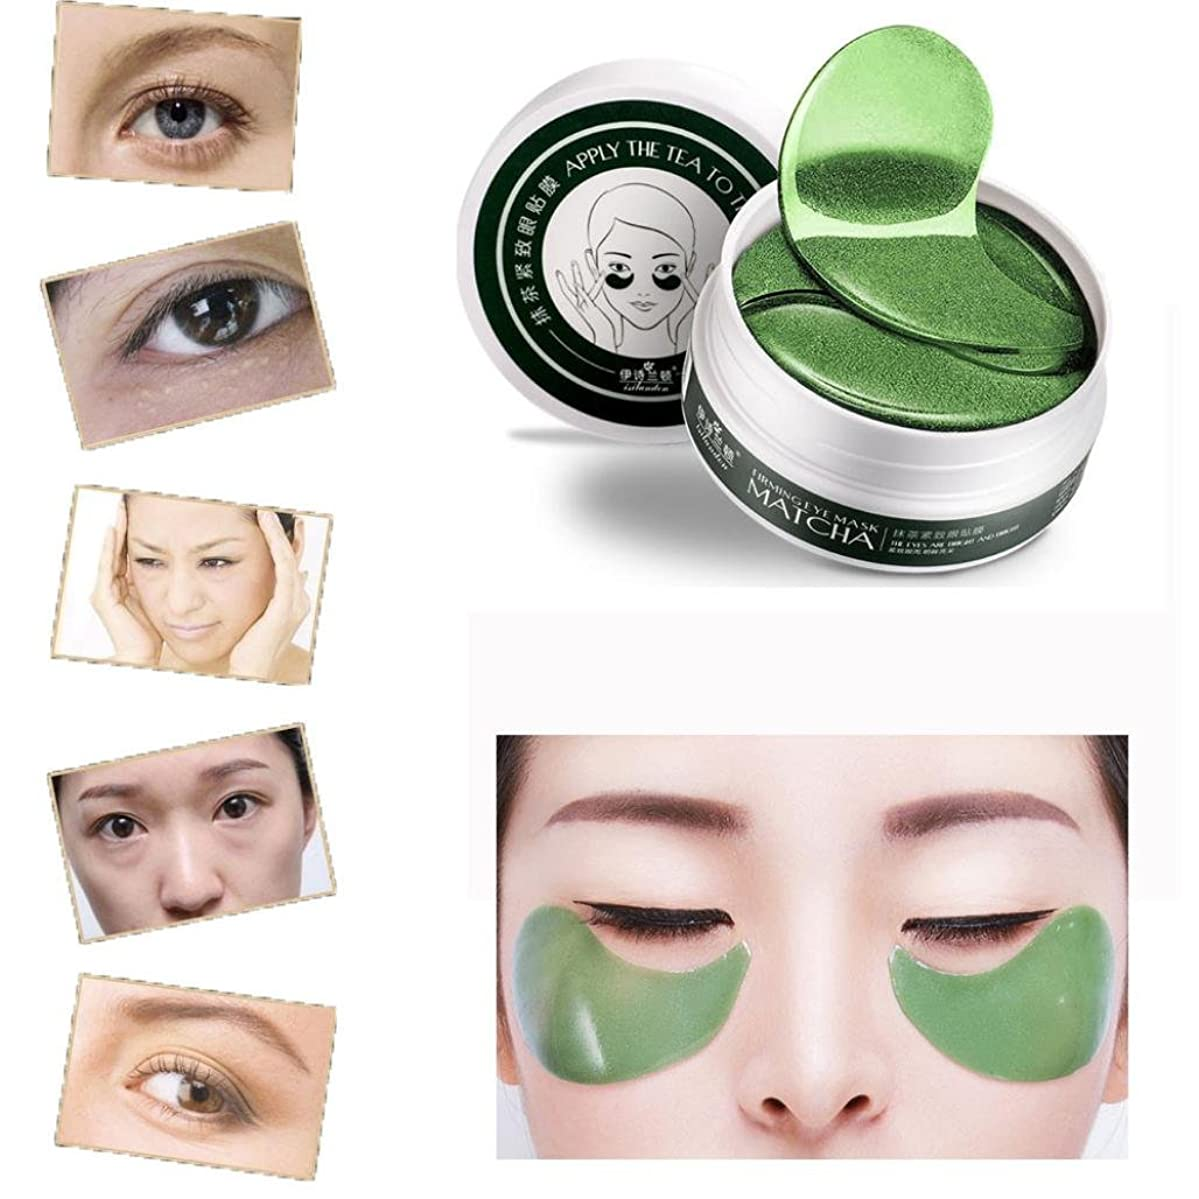 Coerni Professional 60 Pcs Luxury Crystal Matcha Gel Collagen Eye Patch - Powerful Remove Dark Circle and Puffiness, Anti-aging Anti-Wrinkle